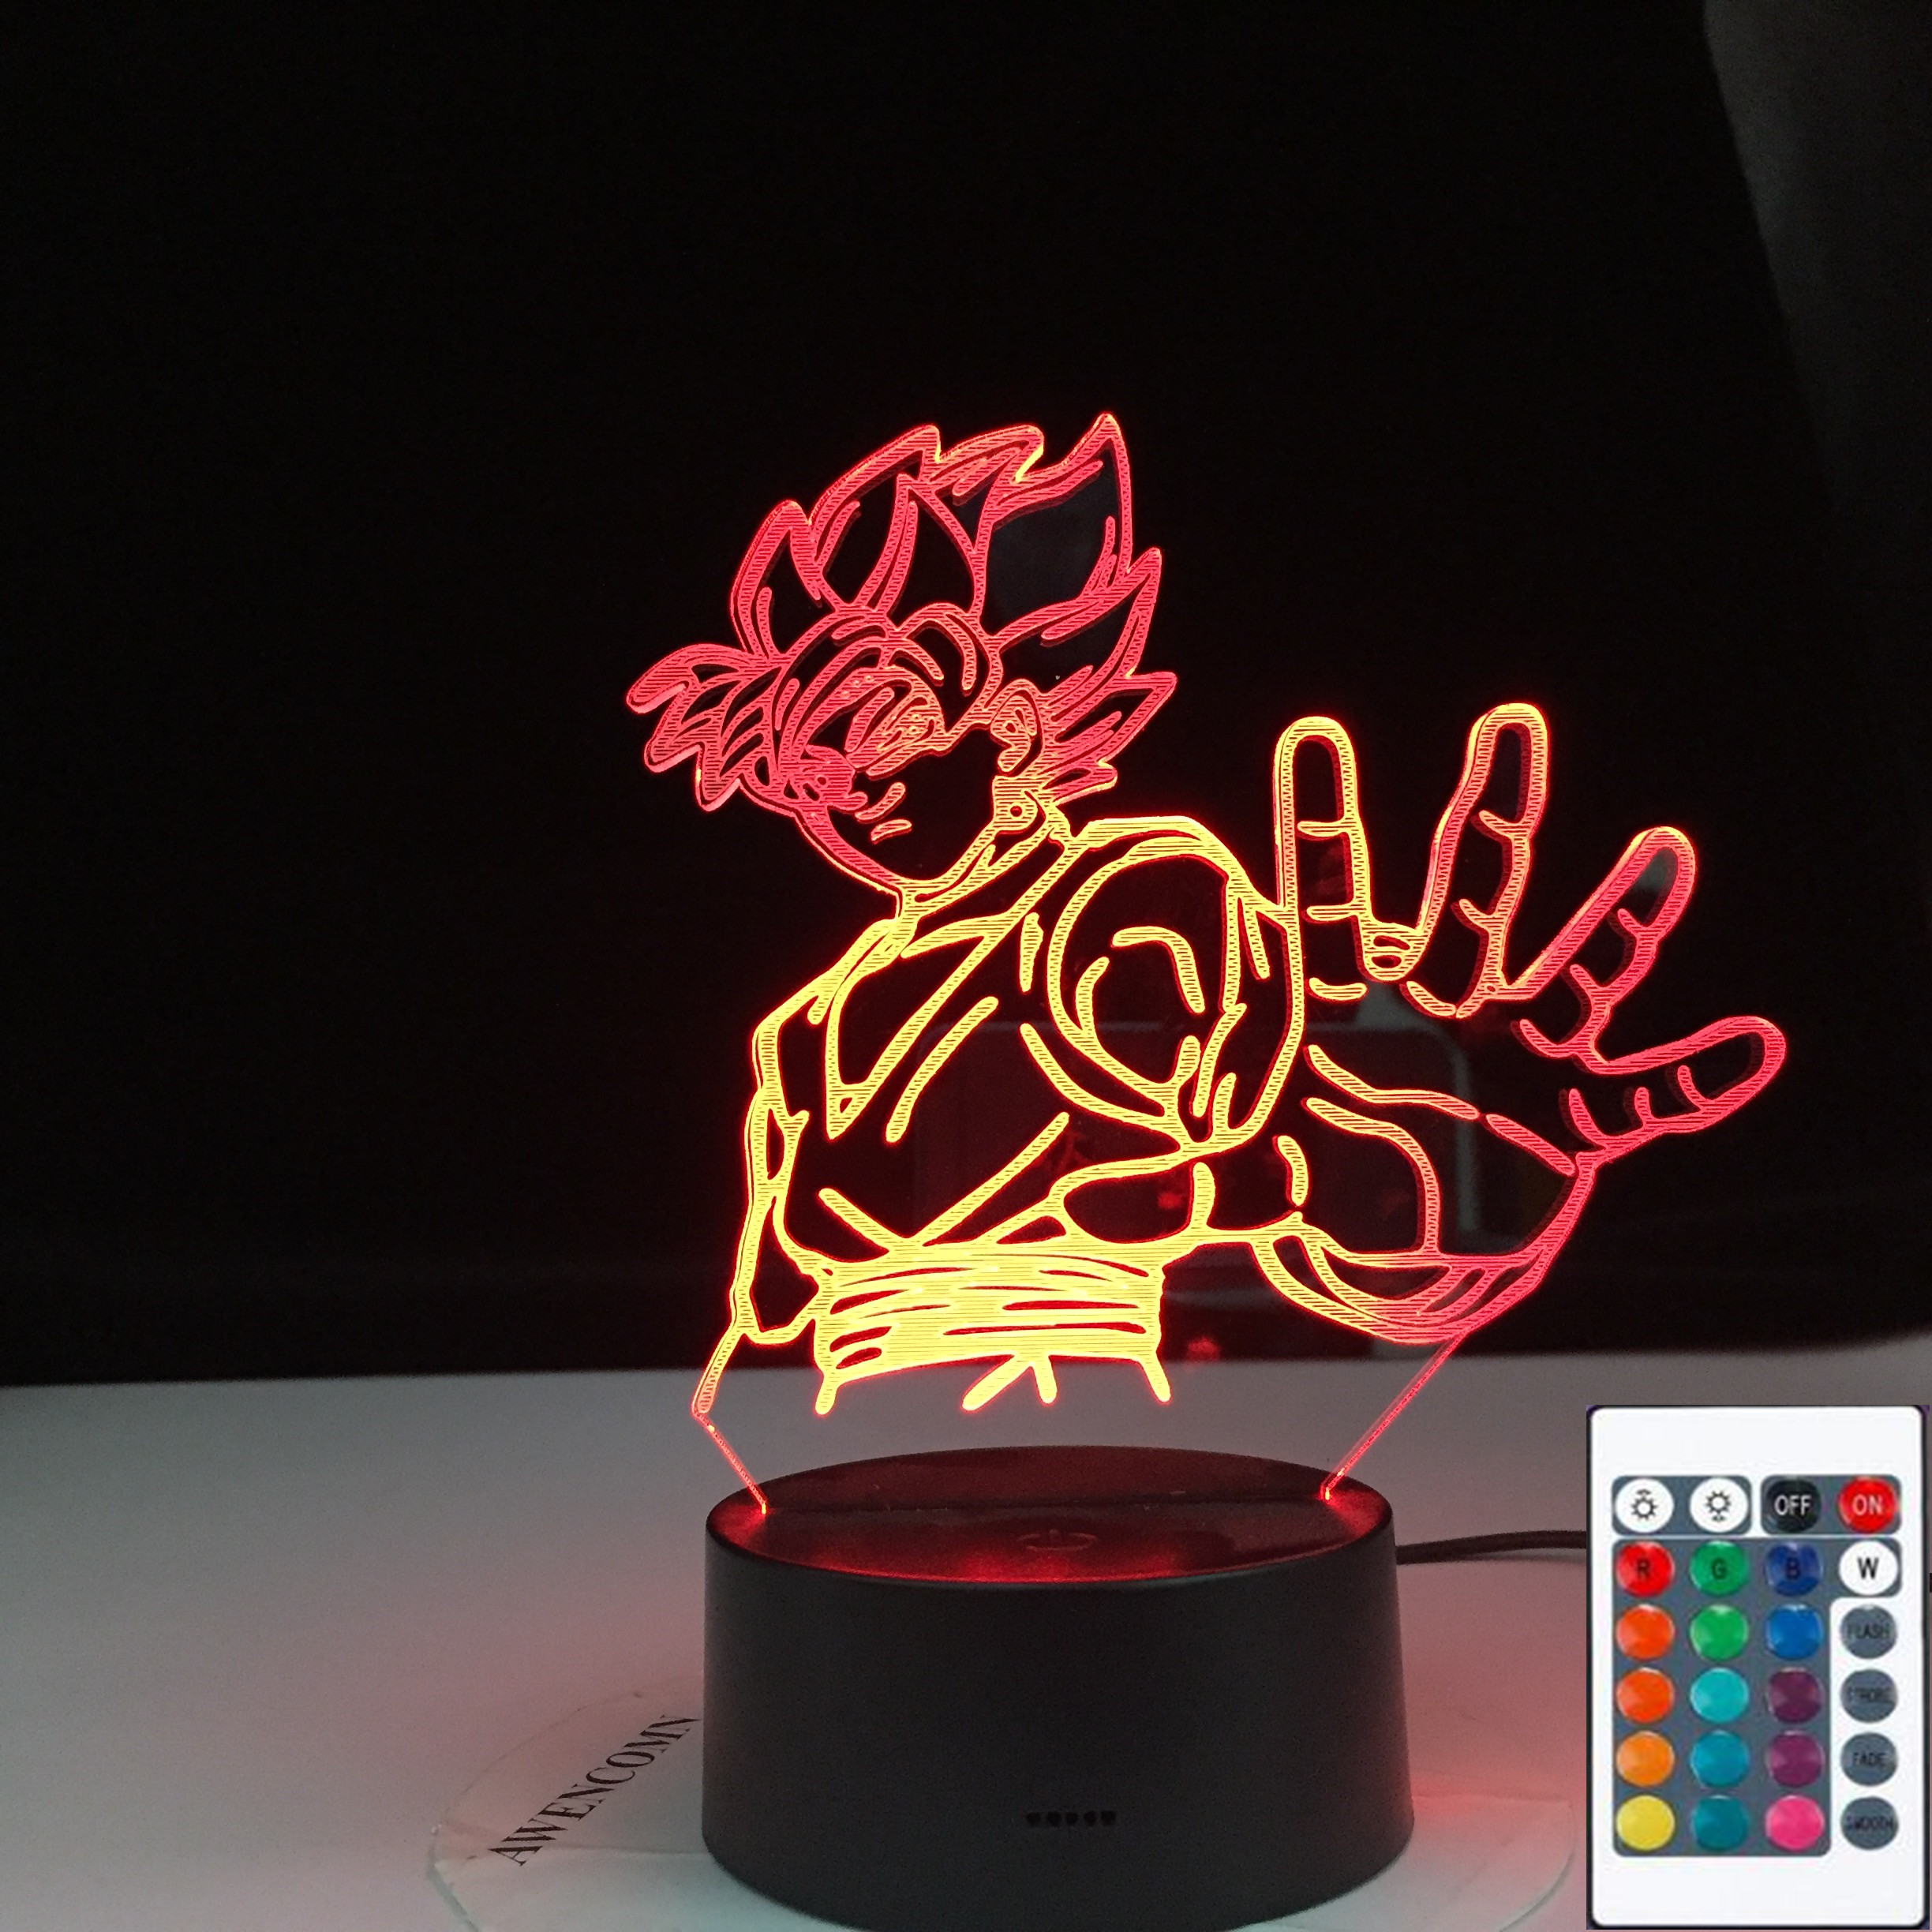 <font><b>Dragon</b></font> <font><b>Ball</b></font> Super Goku Black Figure Night Light Led Touch Sensor Colorful Nightlight for Kids Child Bedroom Decor <font><b>Lamp</b></font> Zamasu image